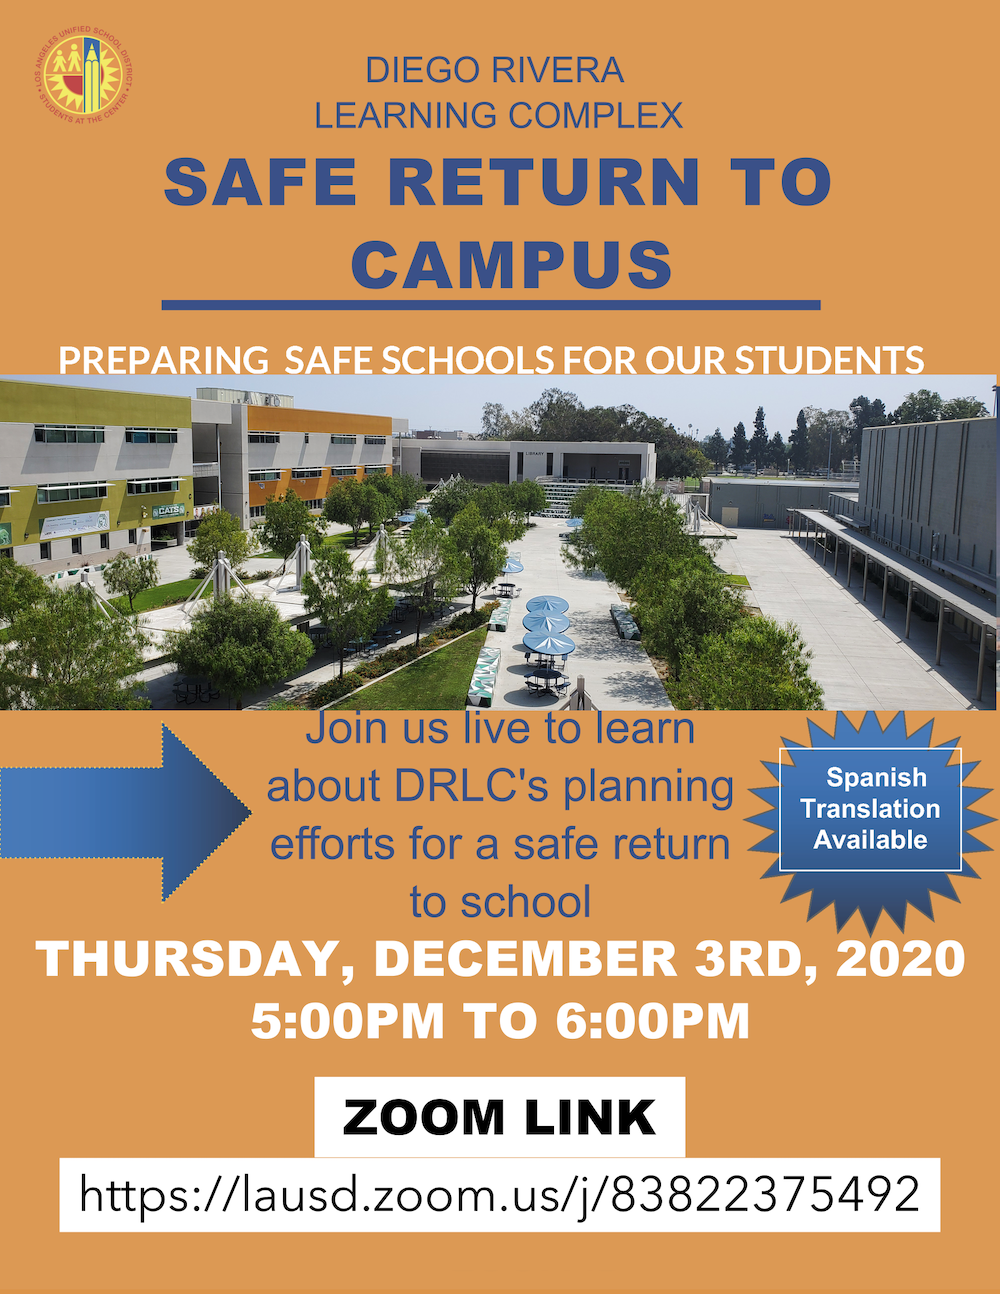 Diego Rivera Complex Townhall Meeting: Safe Return to Campus Information Image